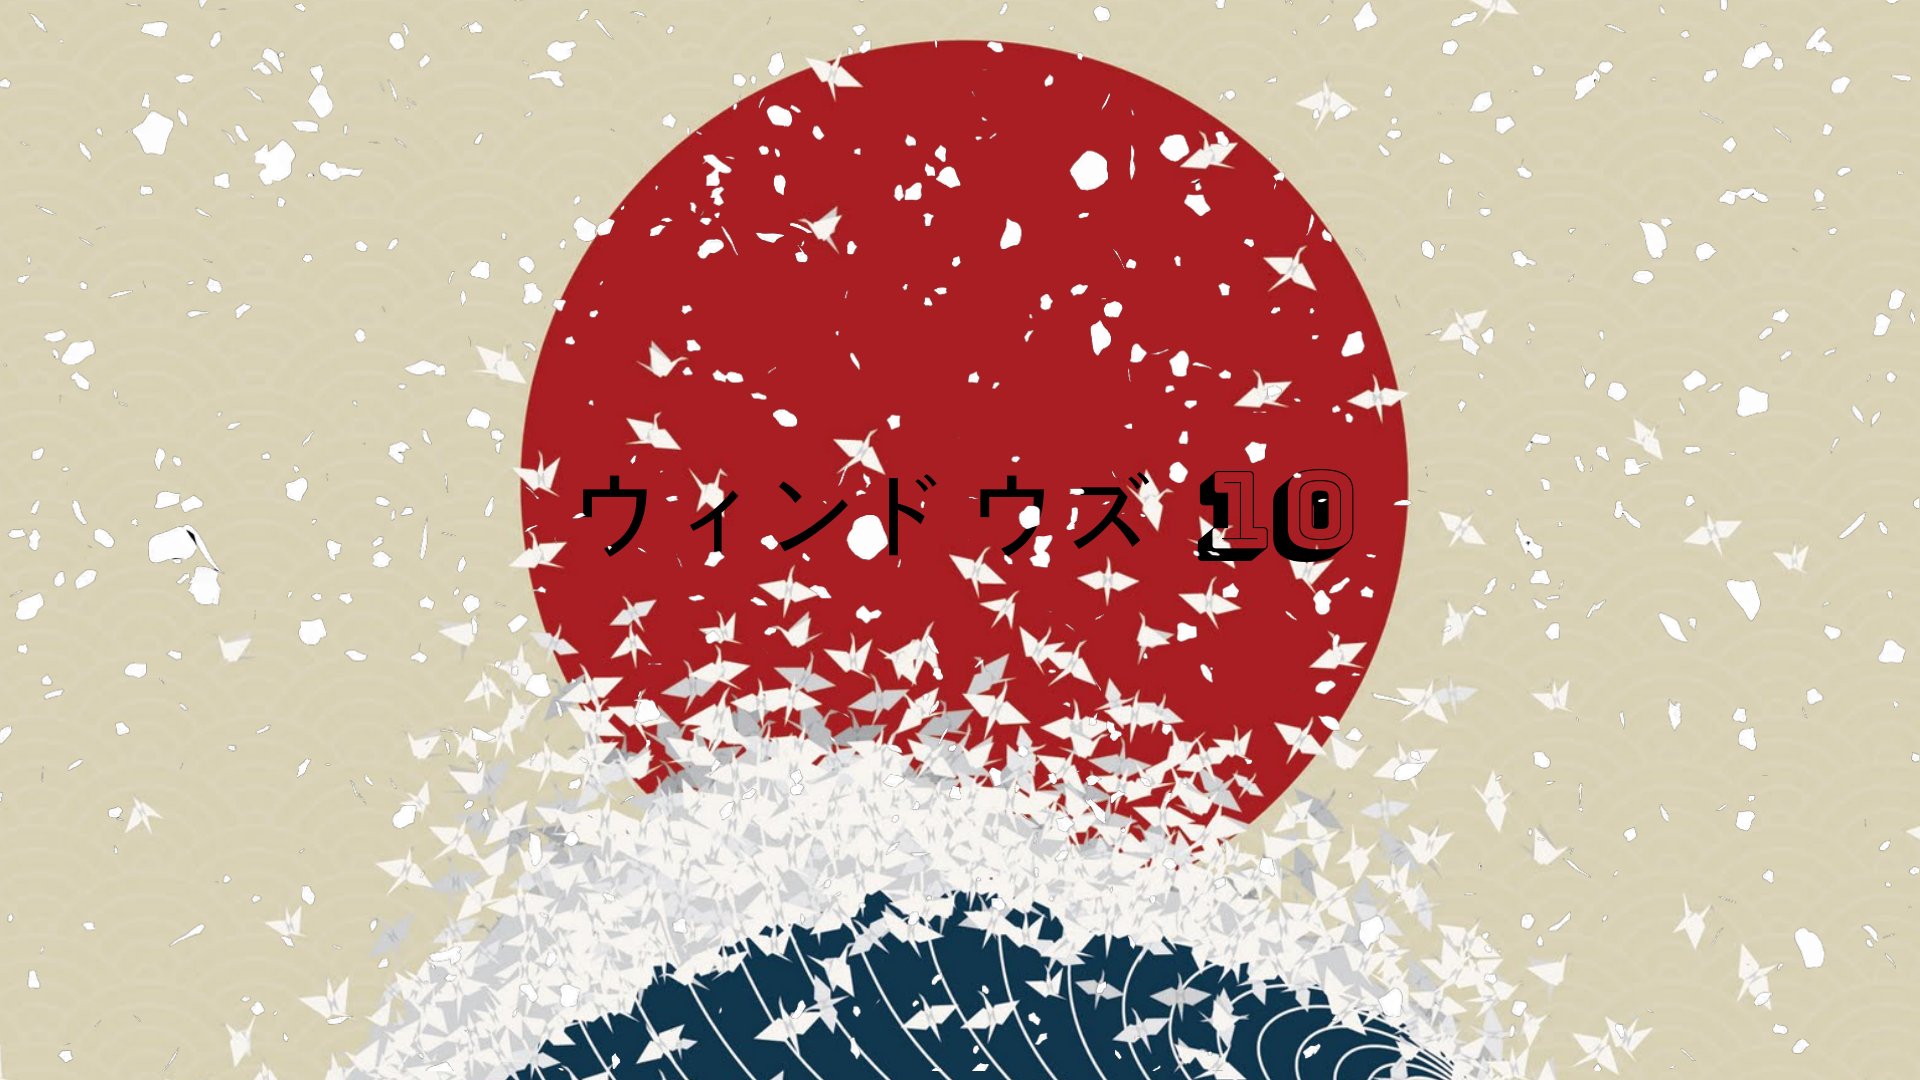 A snowy Japanese background that says 'windows 10